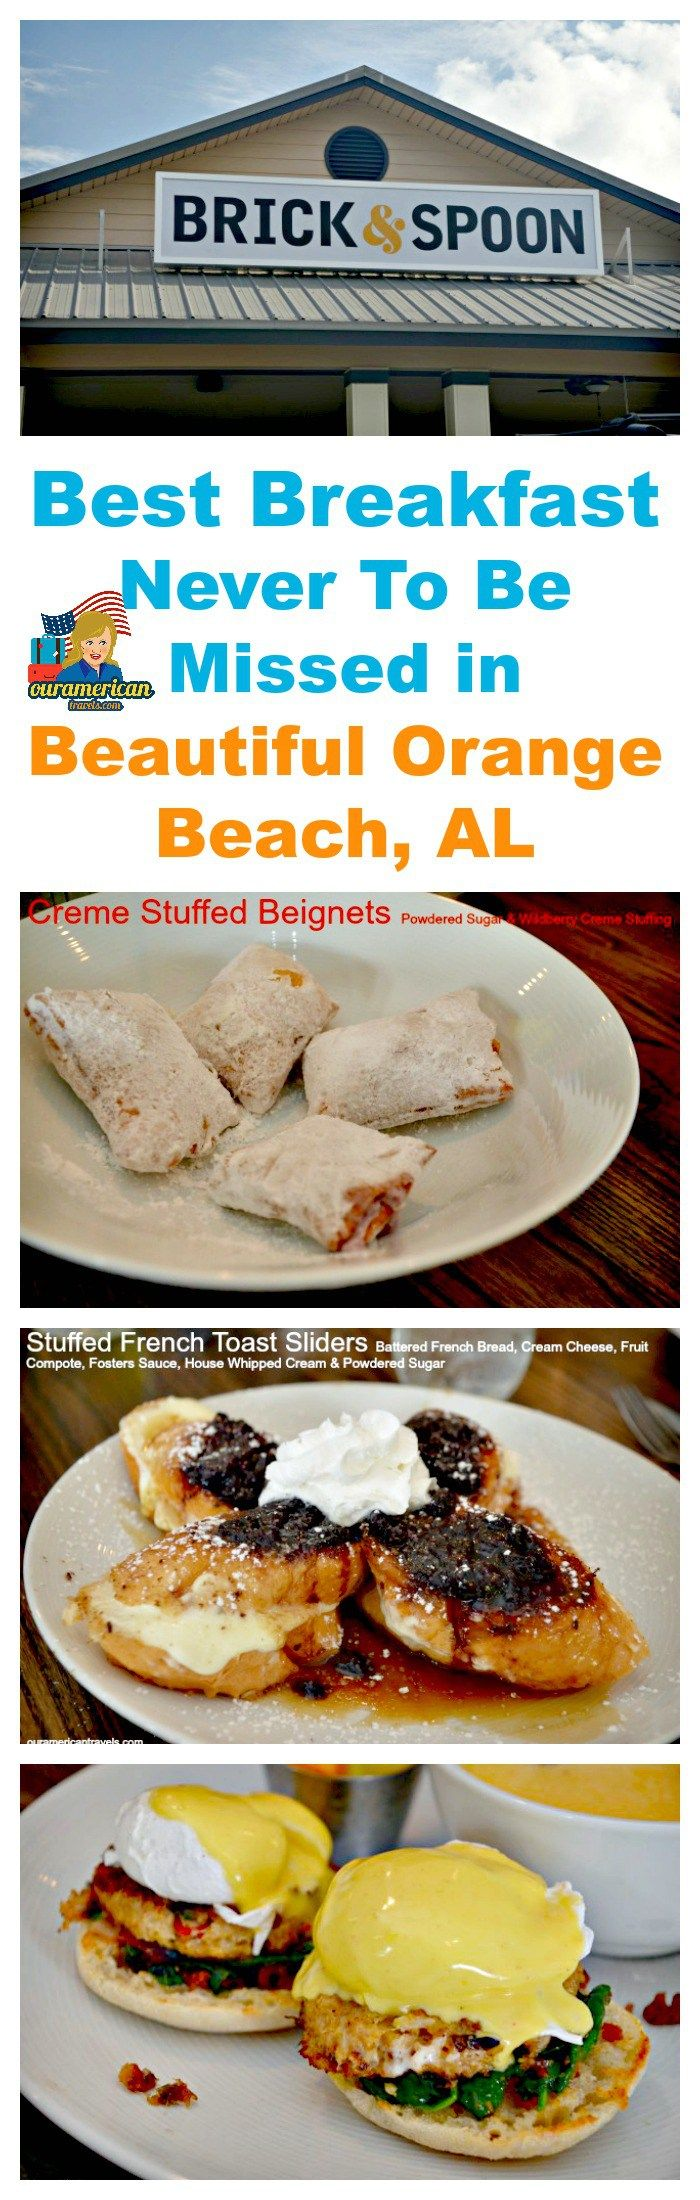 Best Breakfast Never To Be Missed in Beautiful Orange Beach, AL #travel #vacation #beach #Alabama beaches #breakfast #brunch